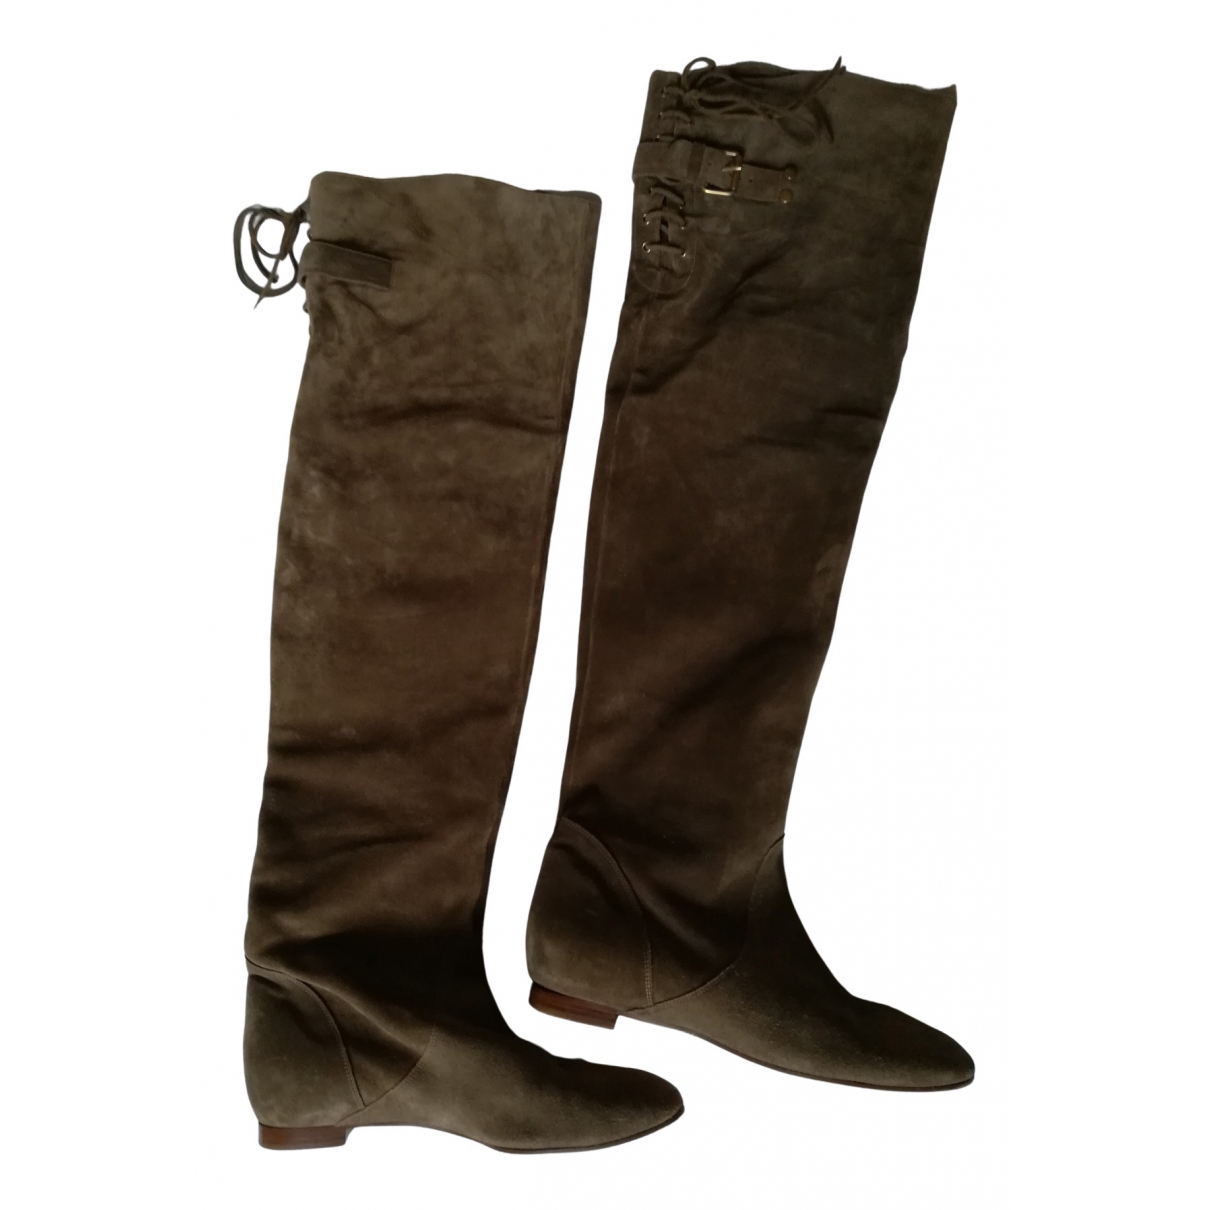 Chloé N Green Leather Boots for Women 39 IT